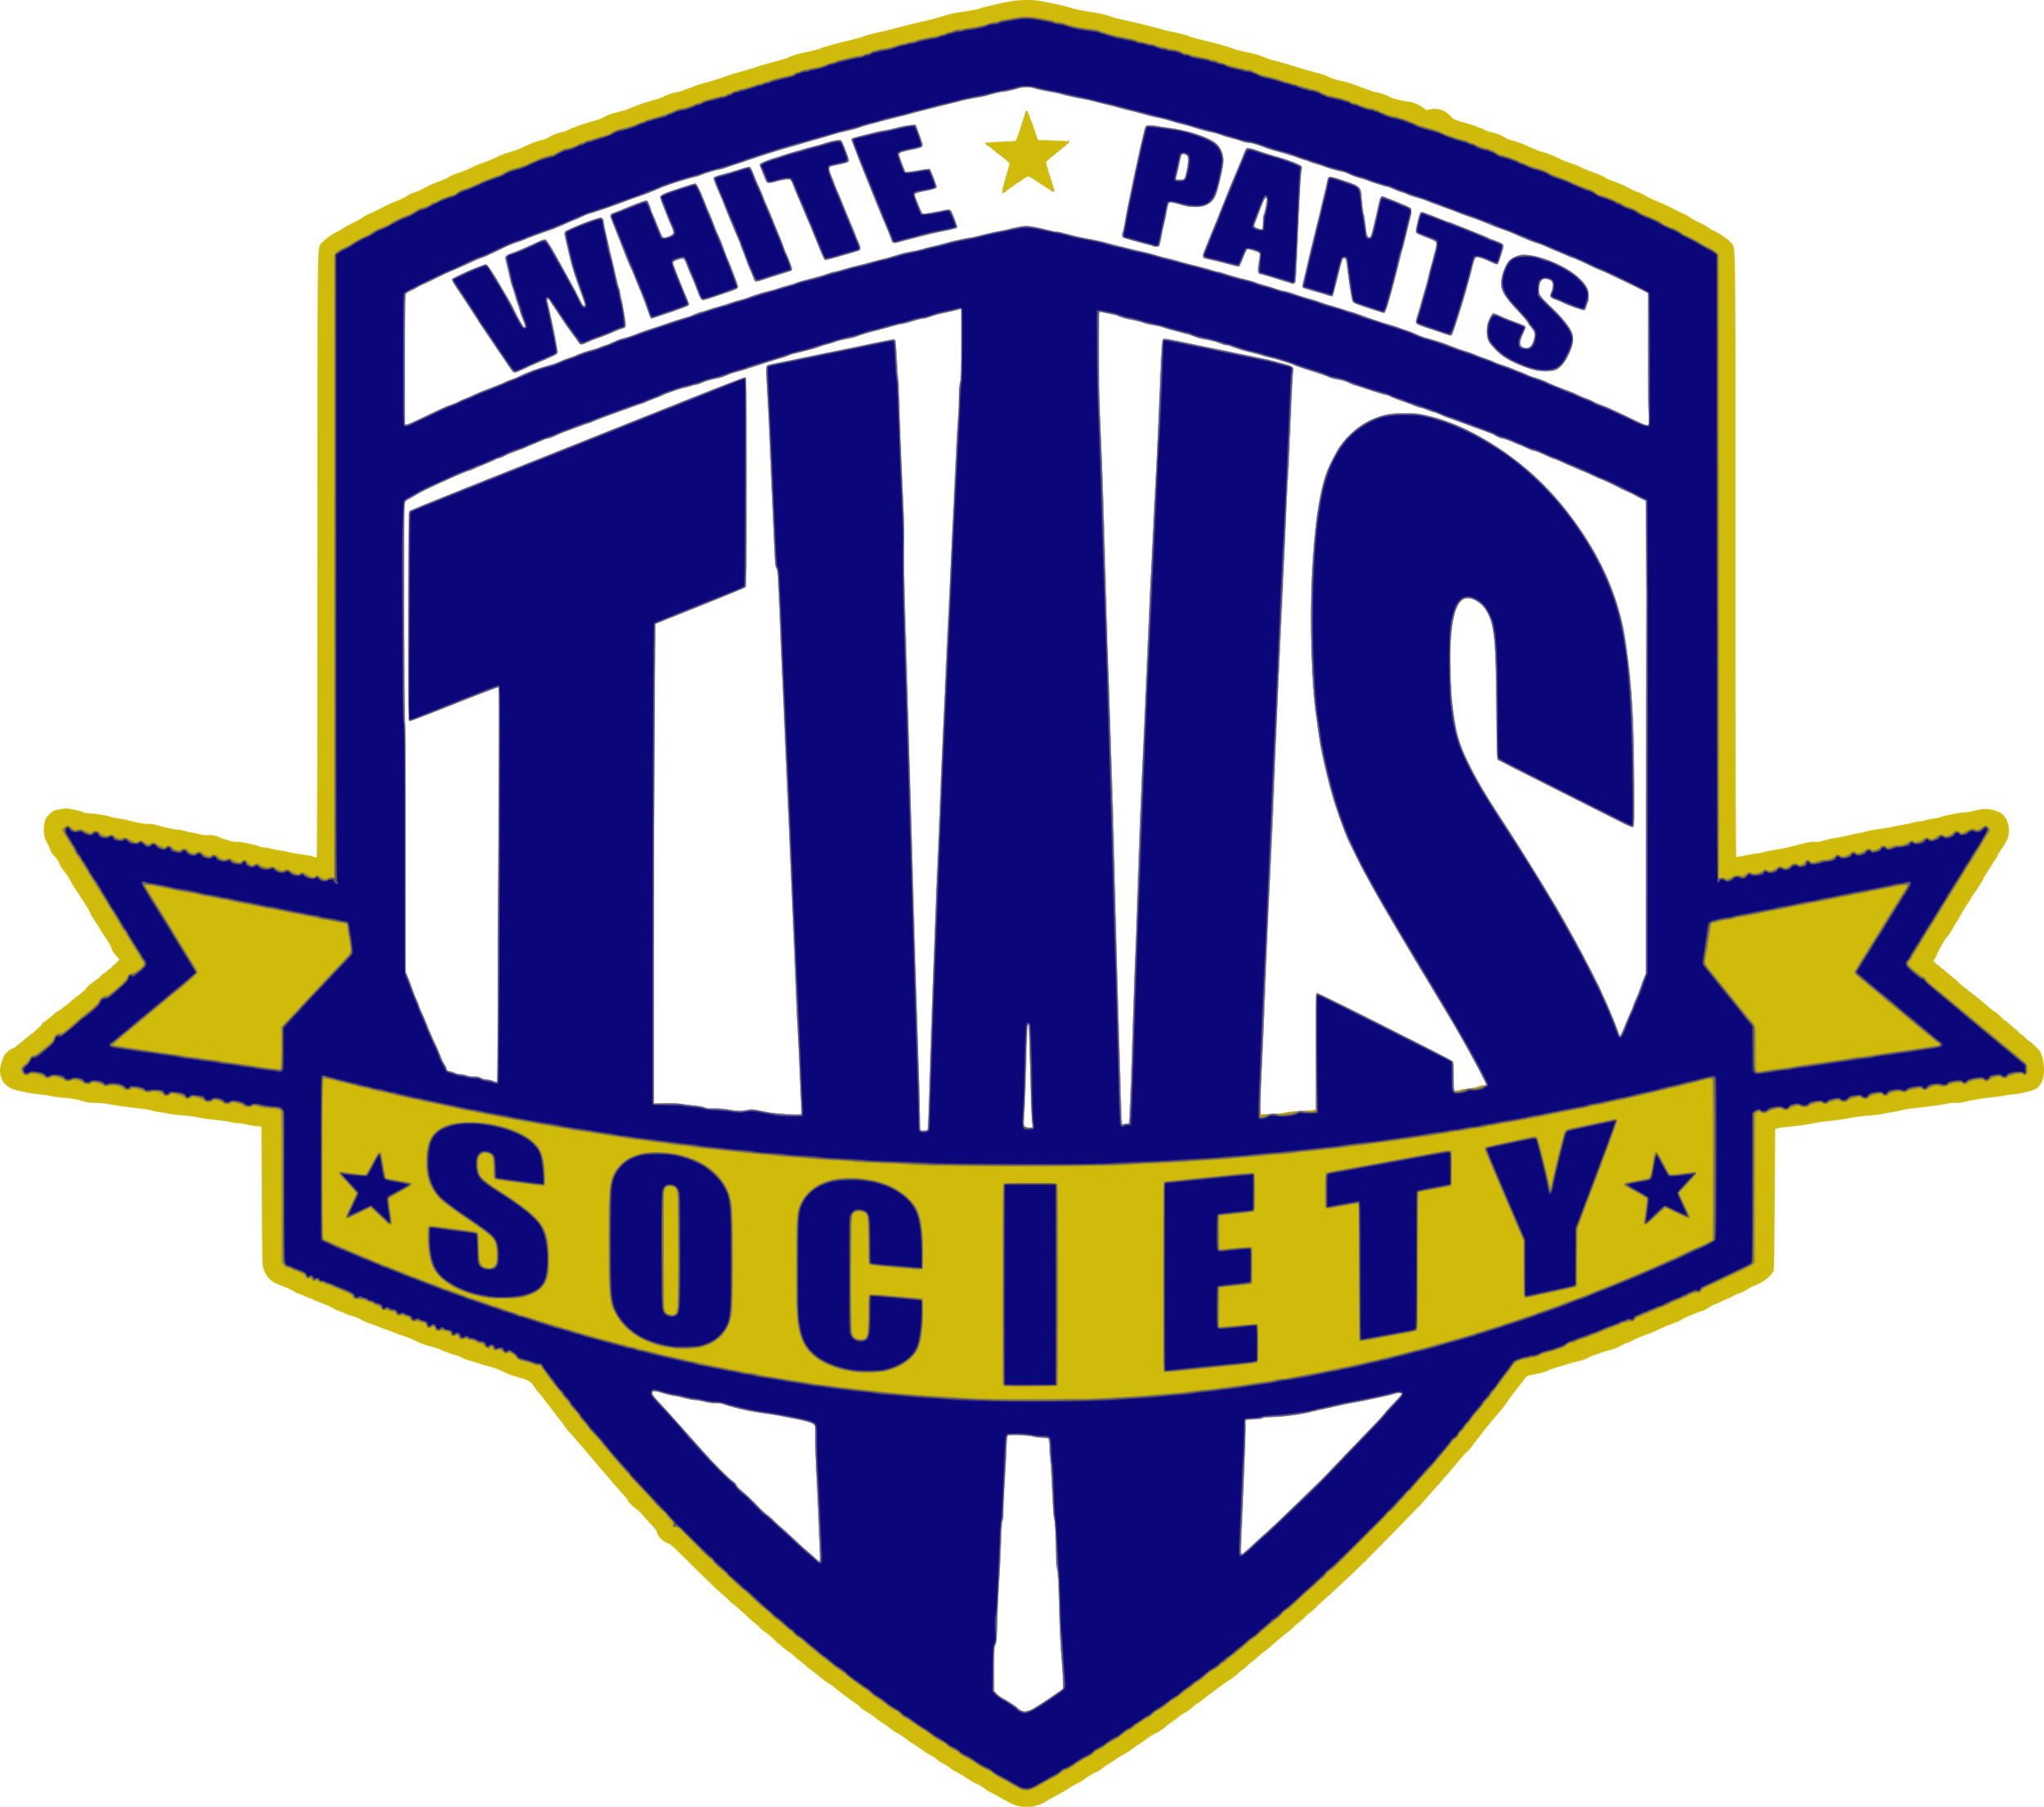 What is TWS   Flan & RichnerD are two guys trying to speak their truths in a world full of WTF. Some people need tough love and that uncut truth. For better or worse, we are The White Pants Society. Subscribe and check out the whatisTWS podcast. It's your new favorite show.    Listen here